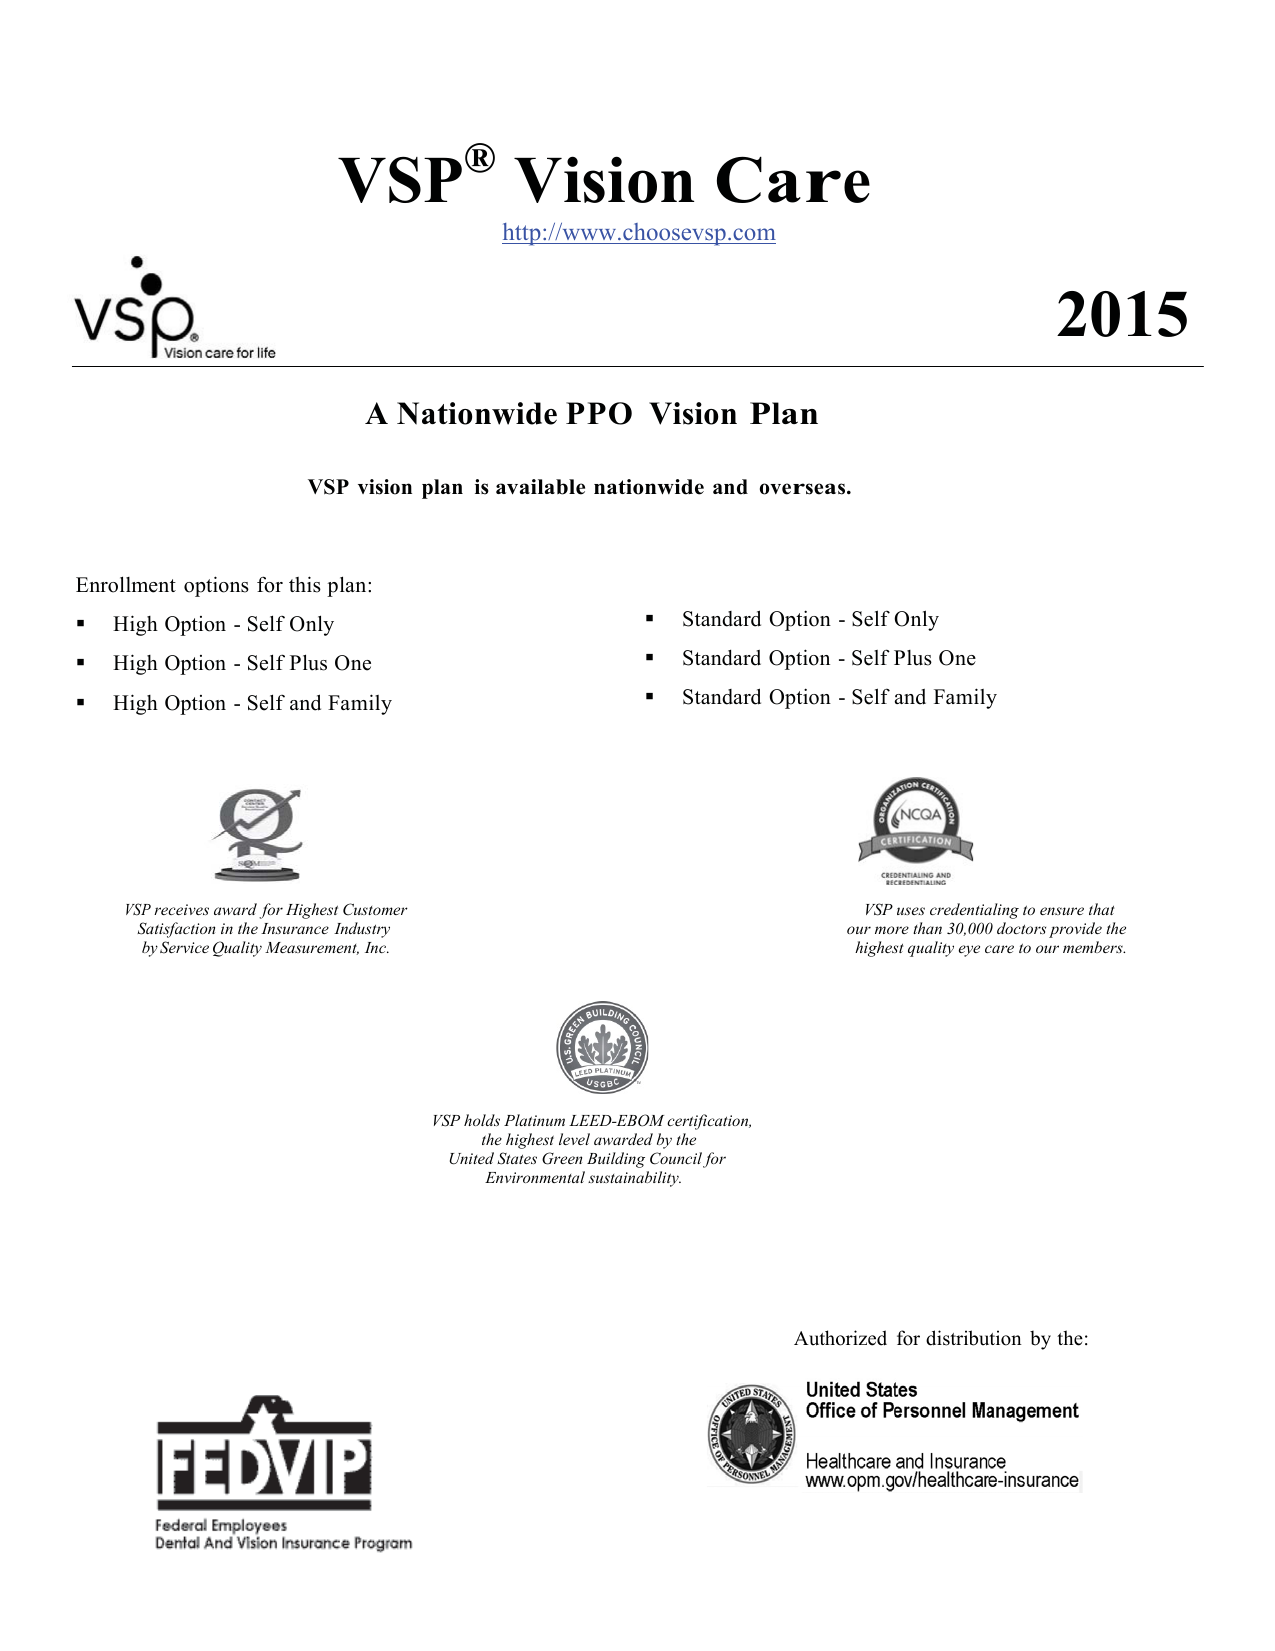 vsp eyemed and other vision plans and insurances in larchmont